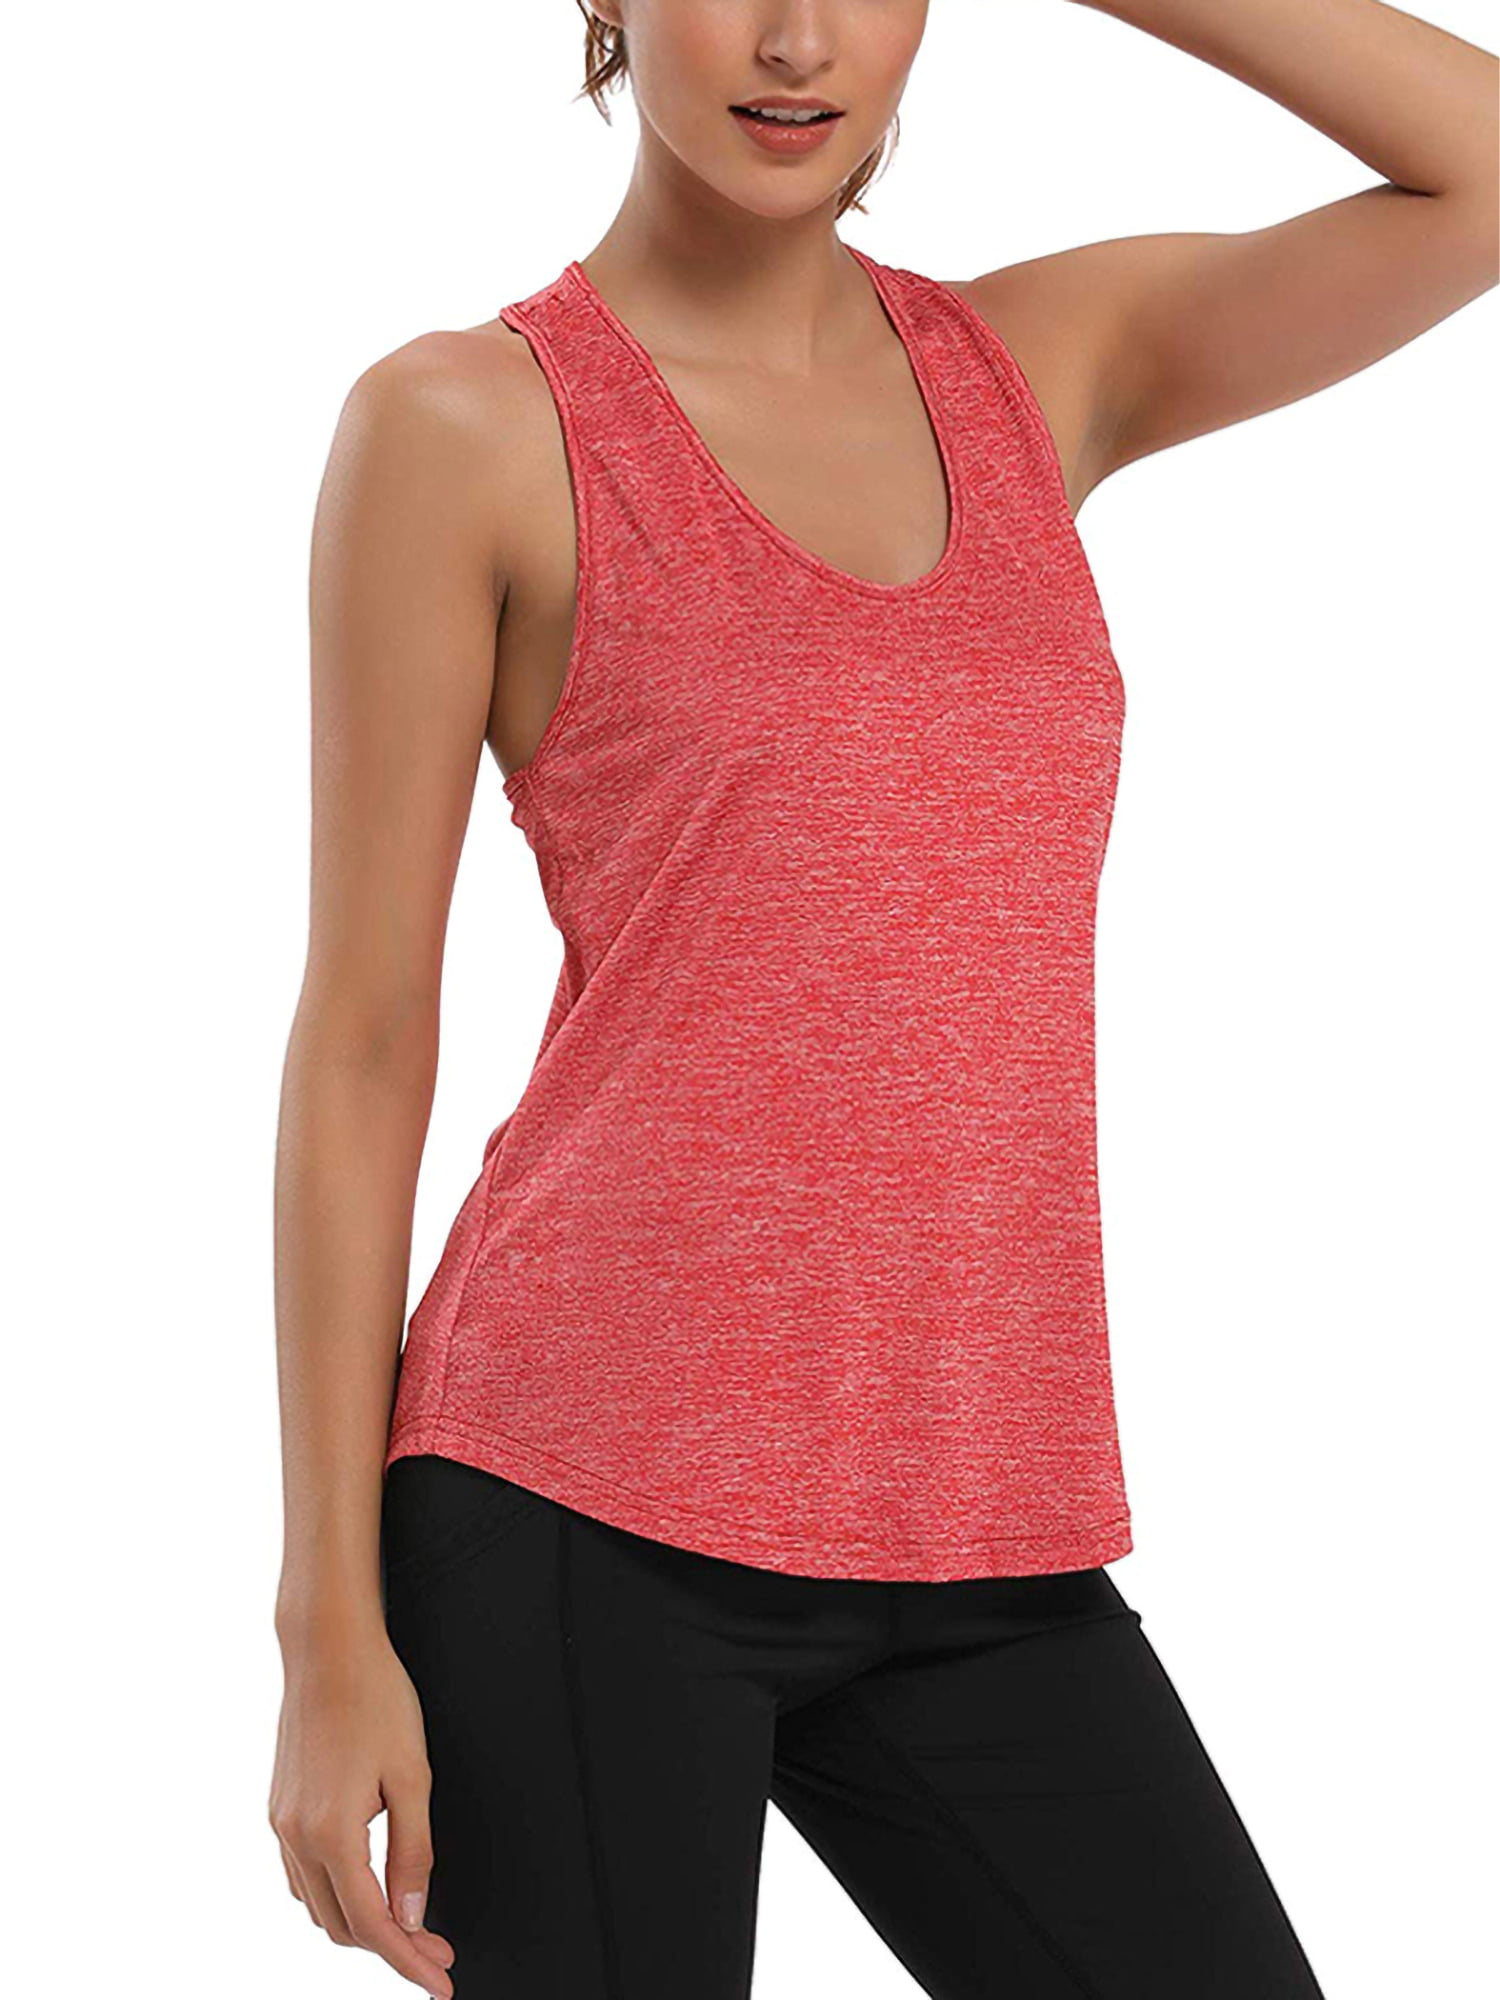 Cross Back Workout Tank Top Shirts Activewear Exercise Athletic Yoga Tops Womens